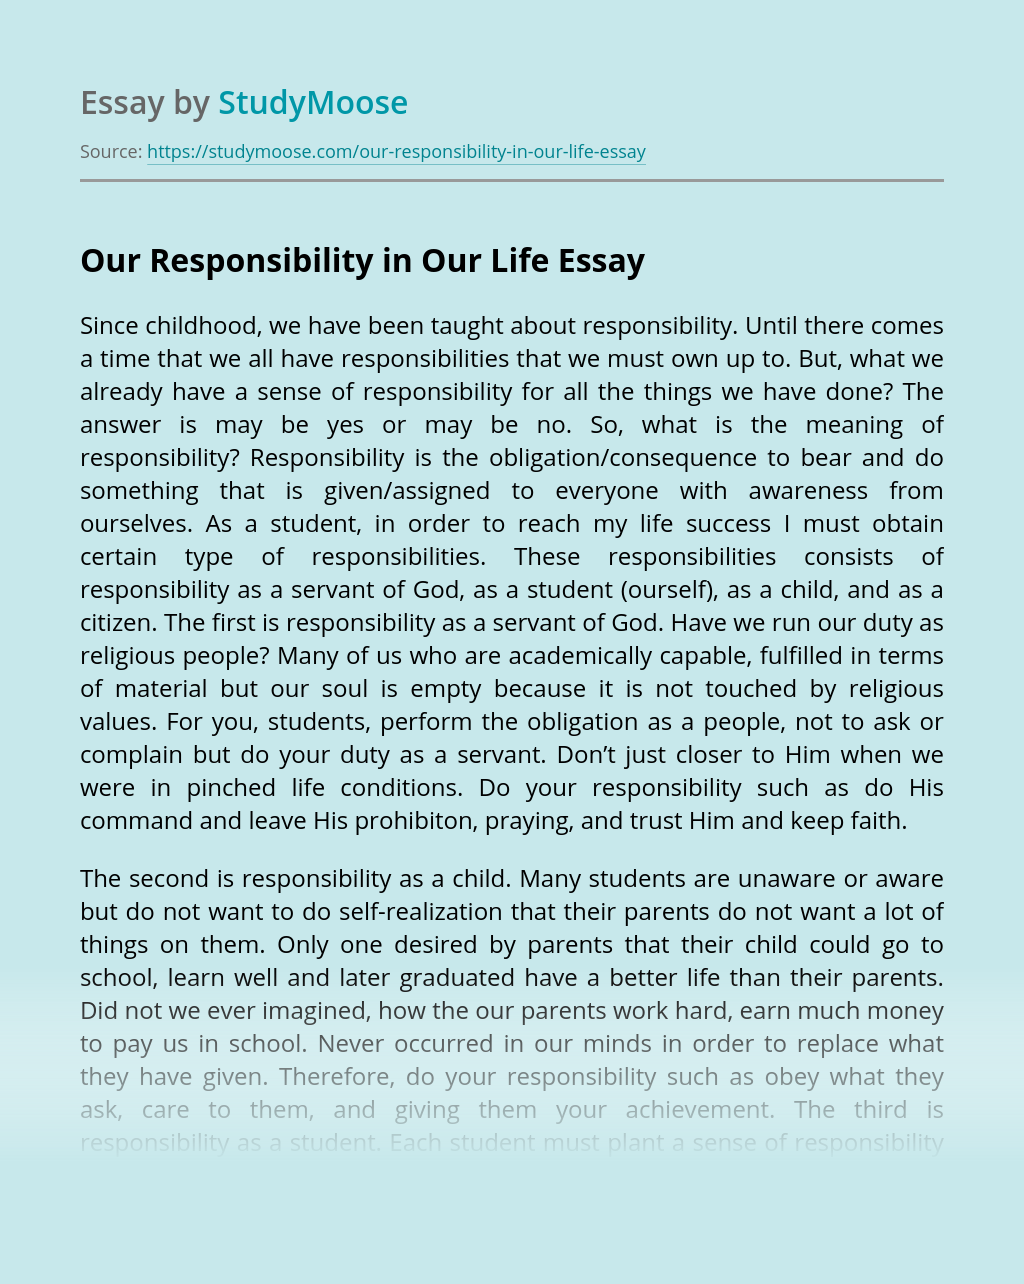 Our Responsibility in Our Life